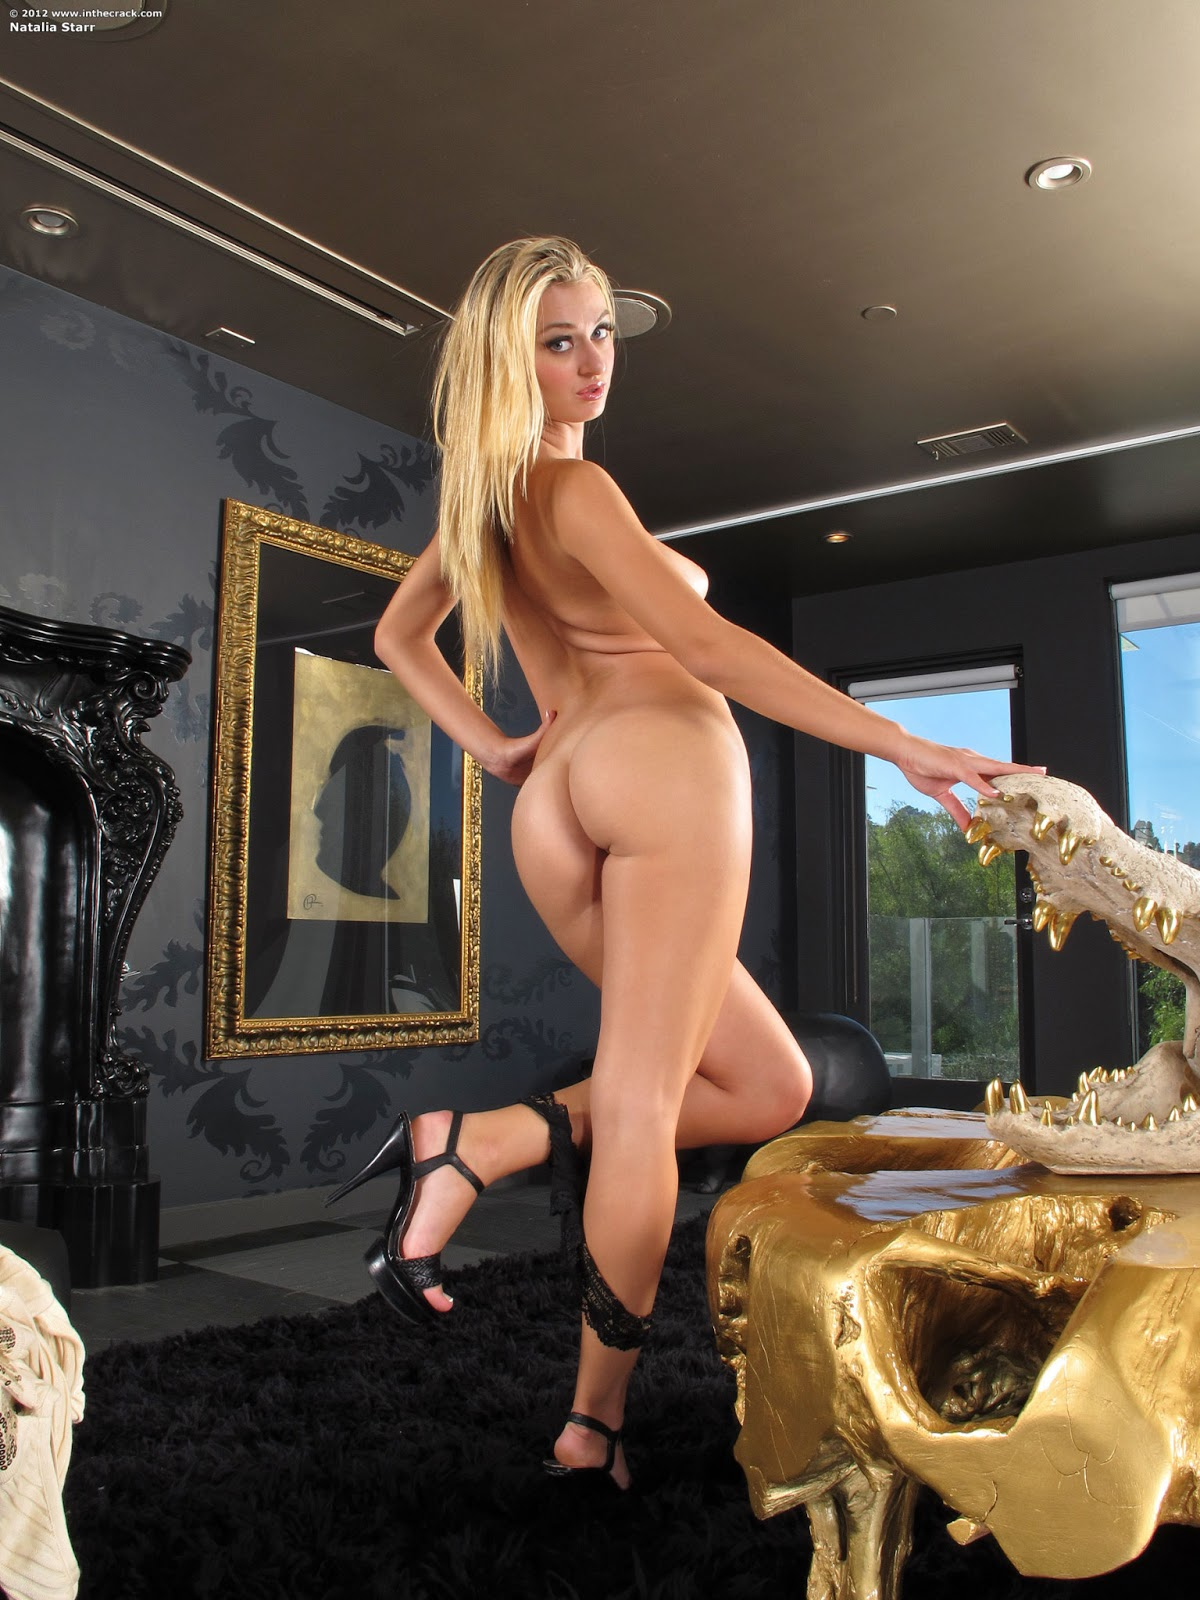 Hotty Stop Natalia Starr In The Crack